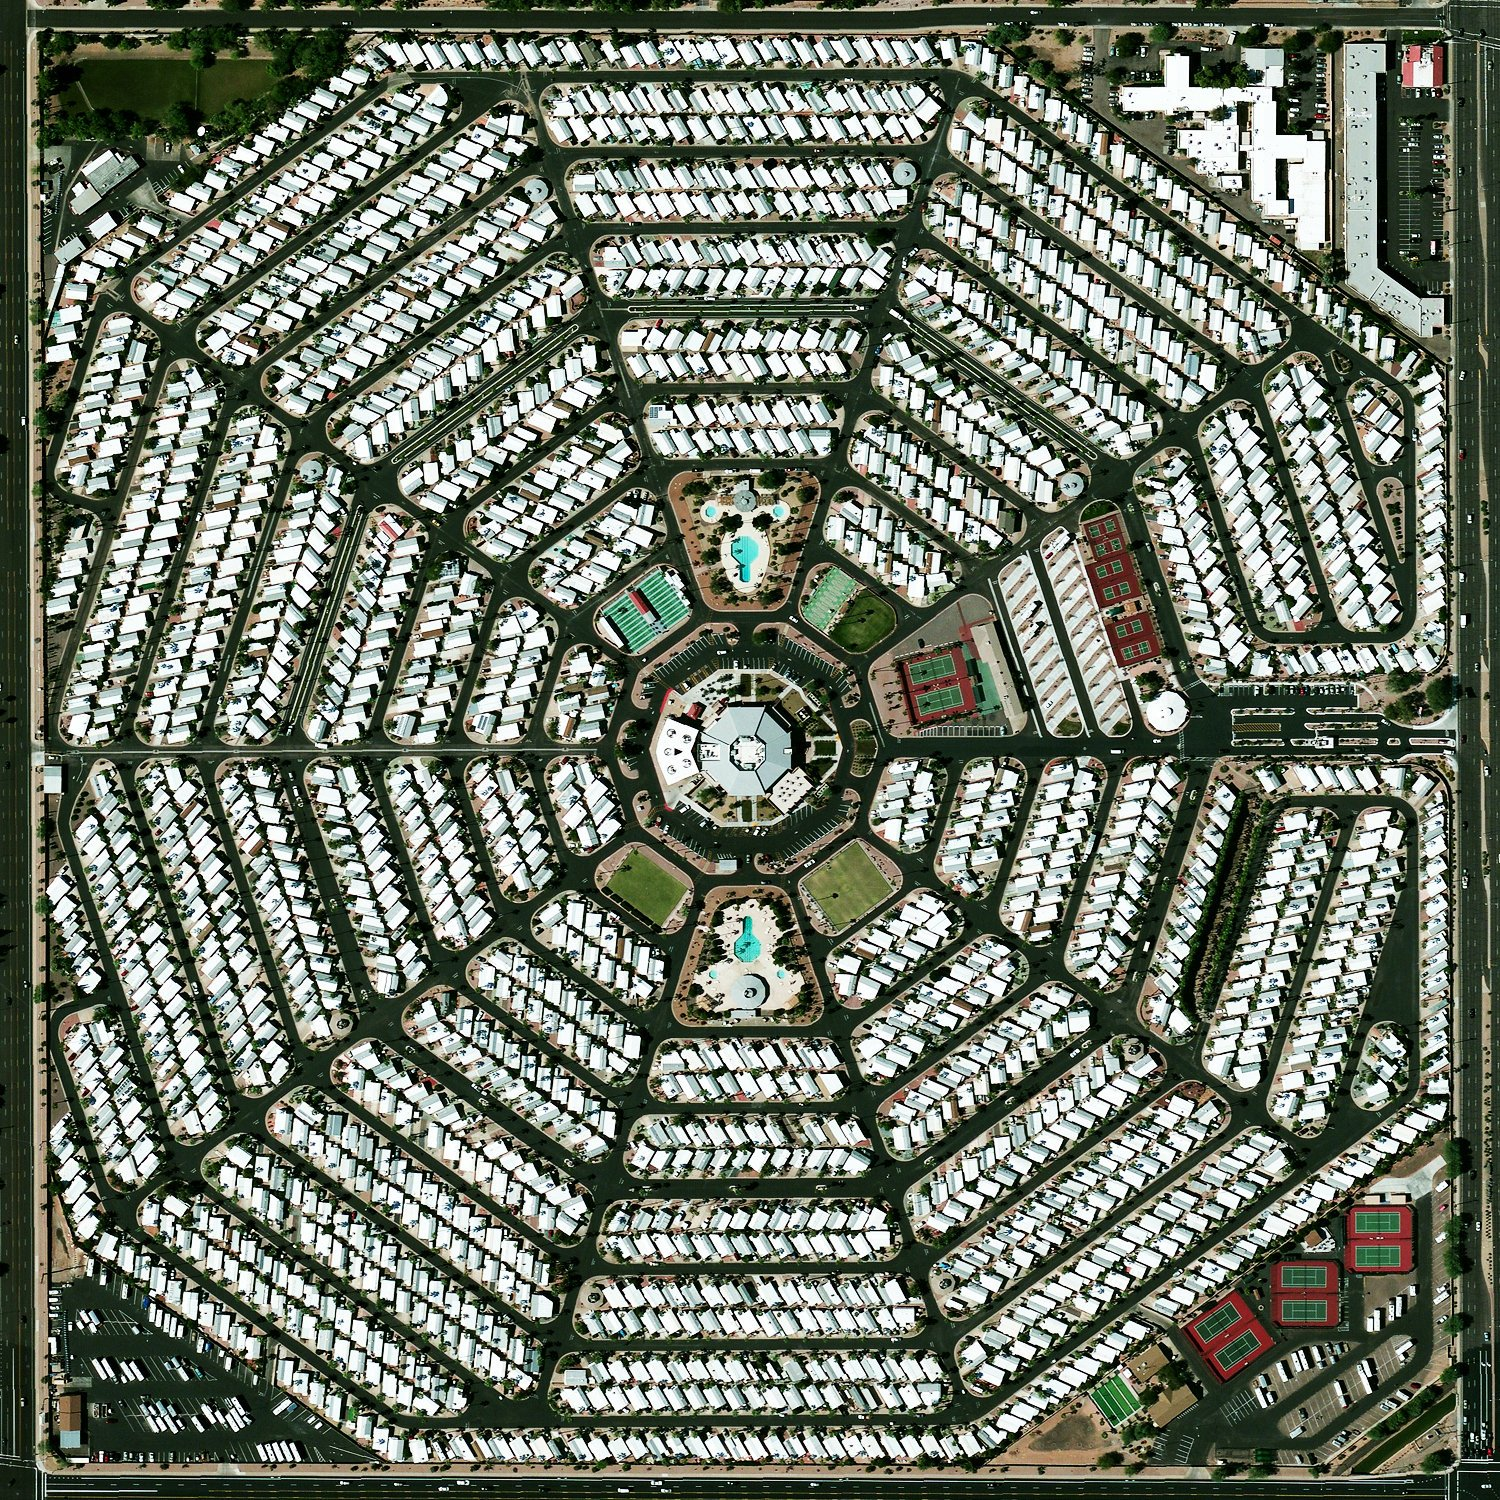 Review: Modest Mouse, Strangers to Ourselves - Slant Magazine